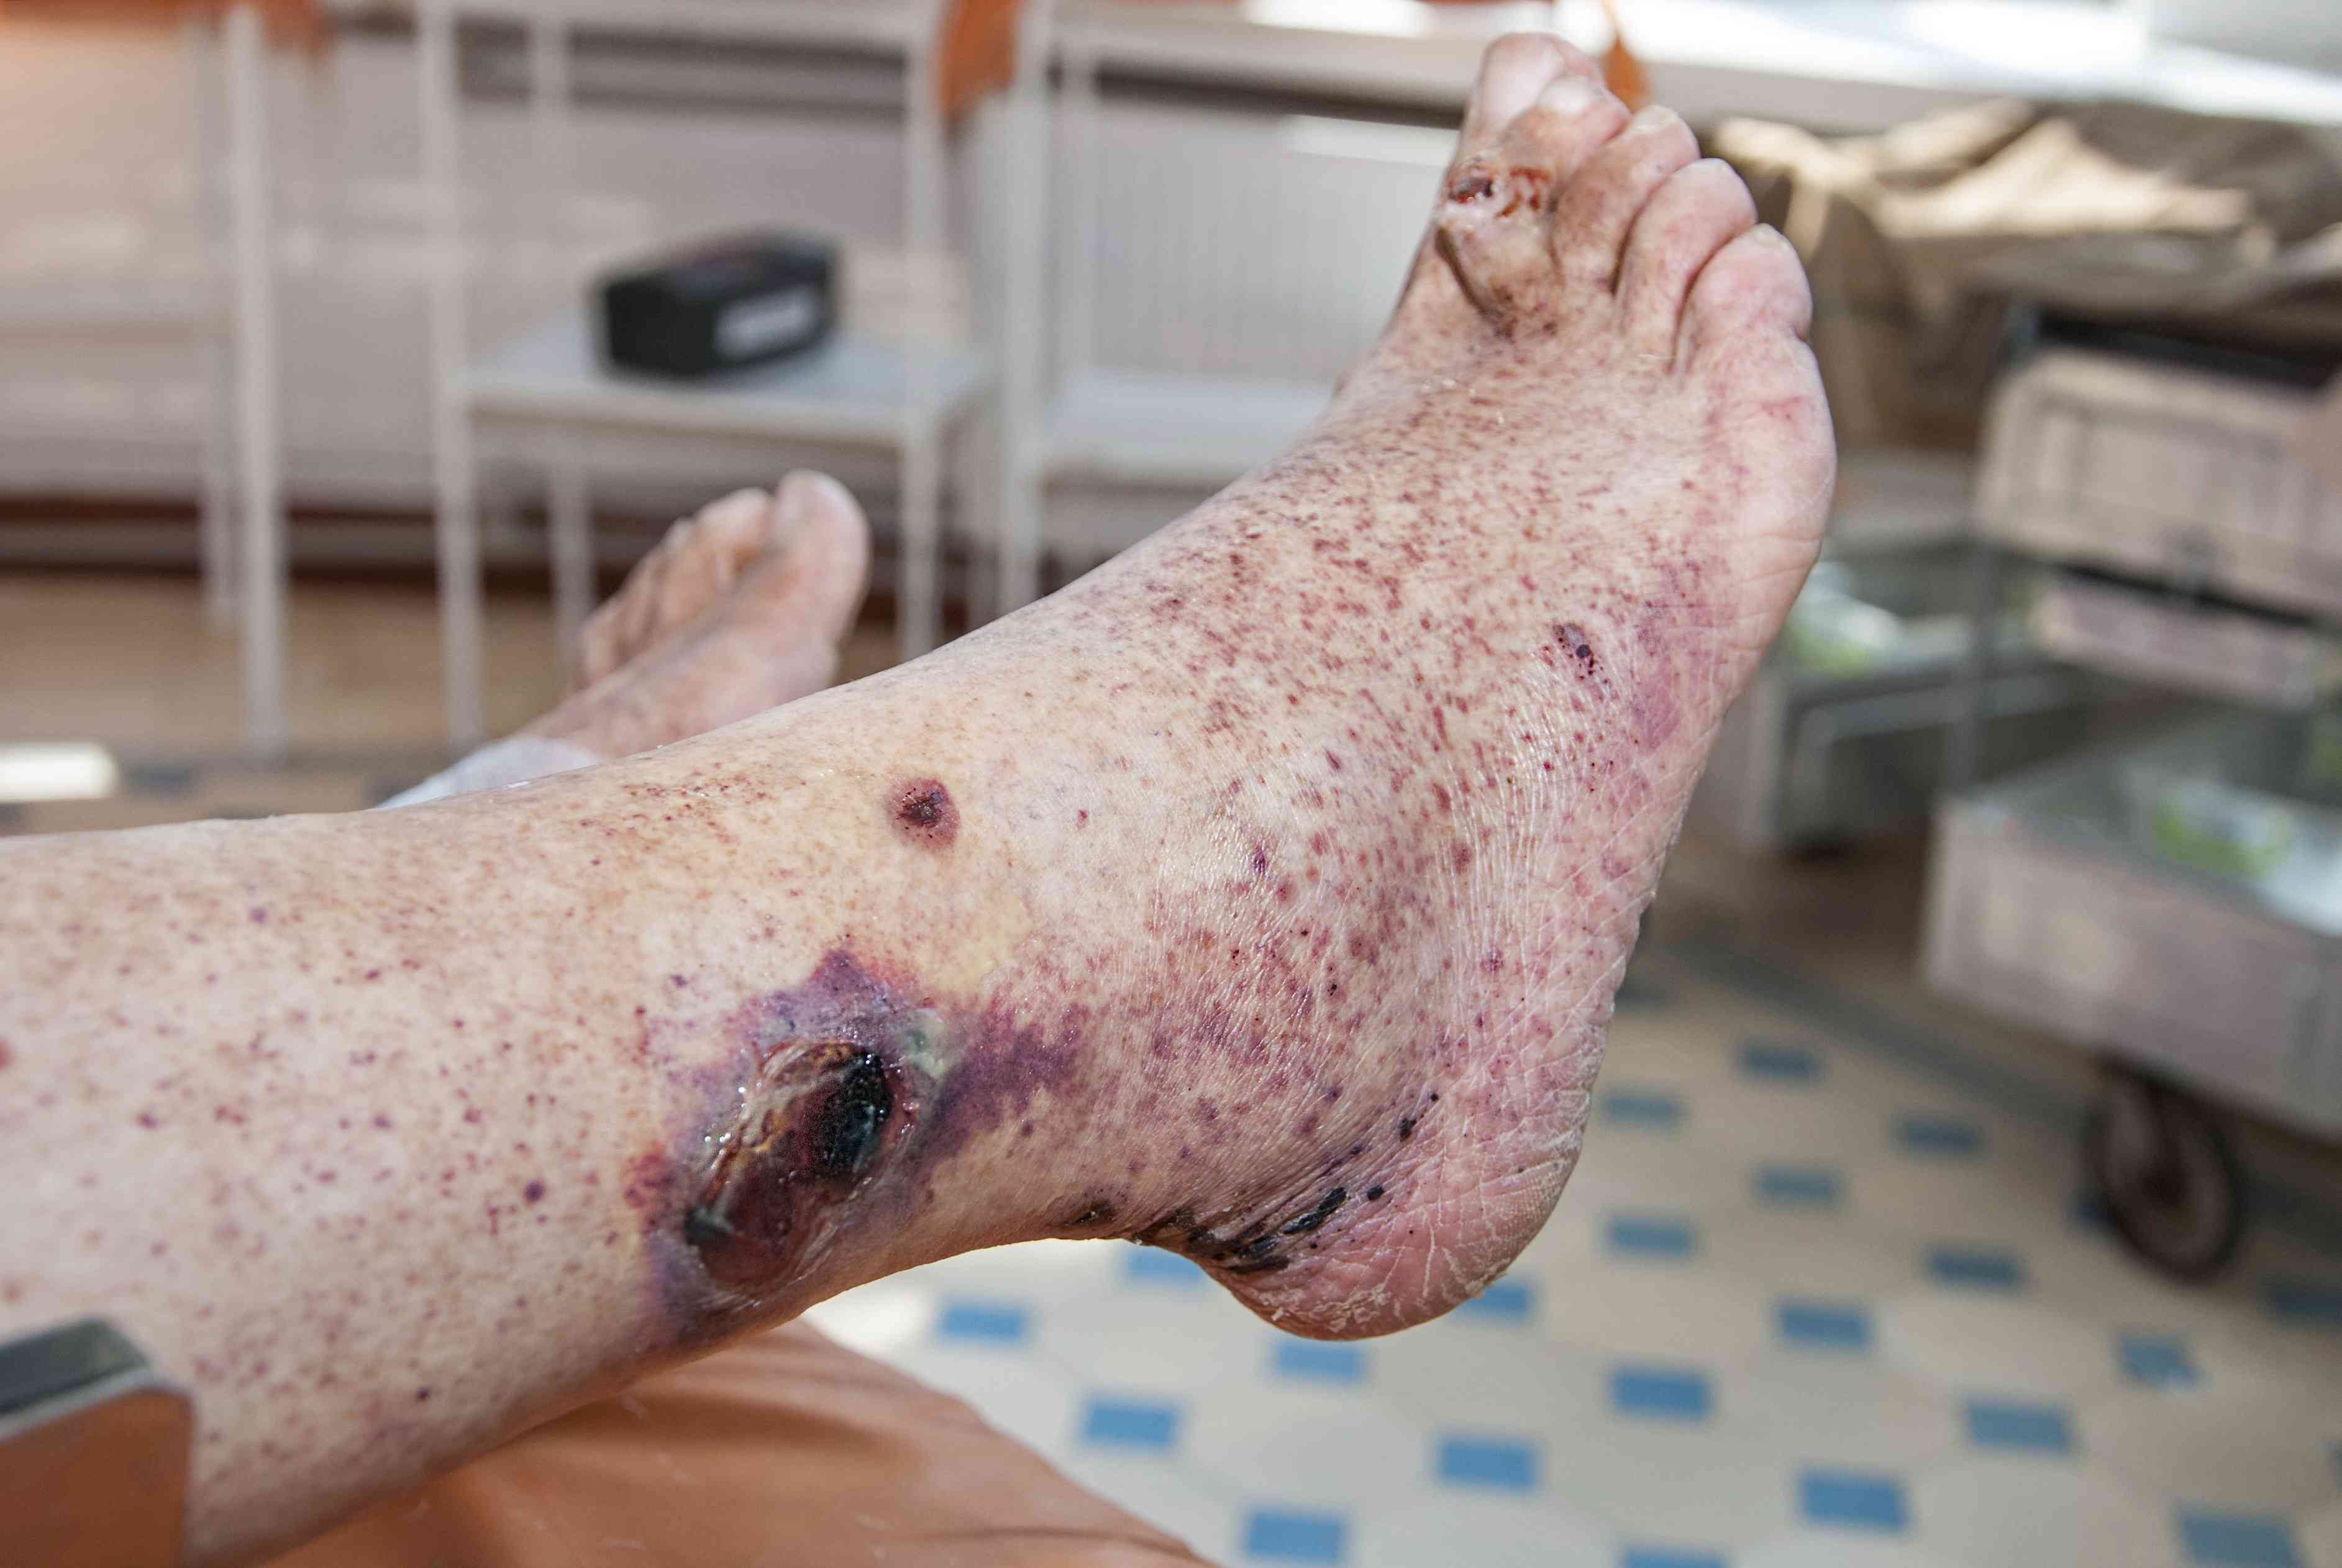 blood spots on the ankle and foot